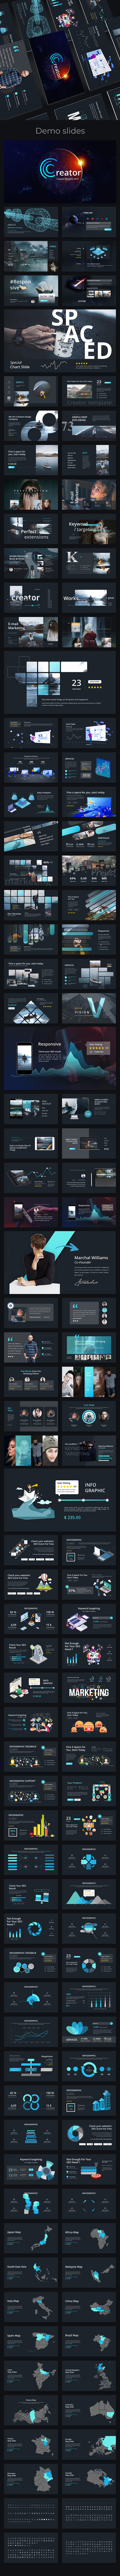 Creator Creative Keynote Template - Creative Keynote Templates